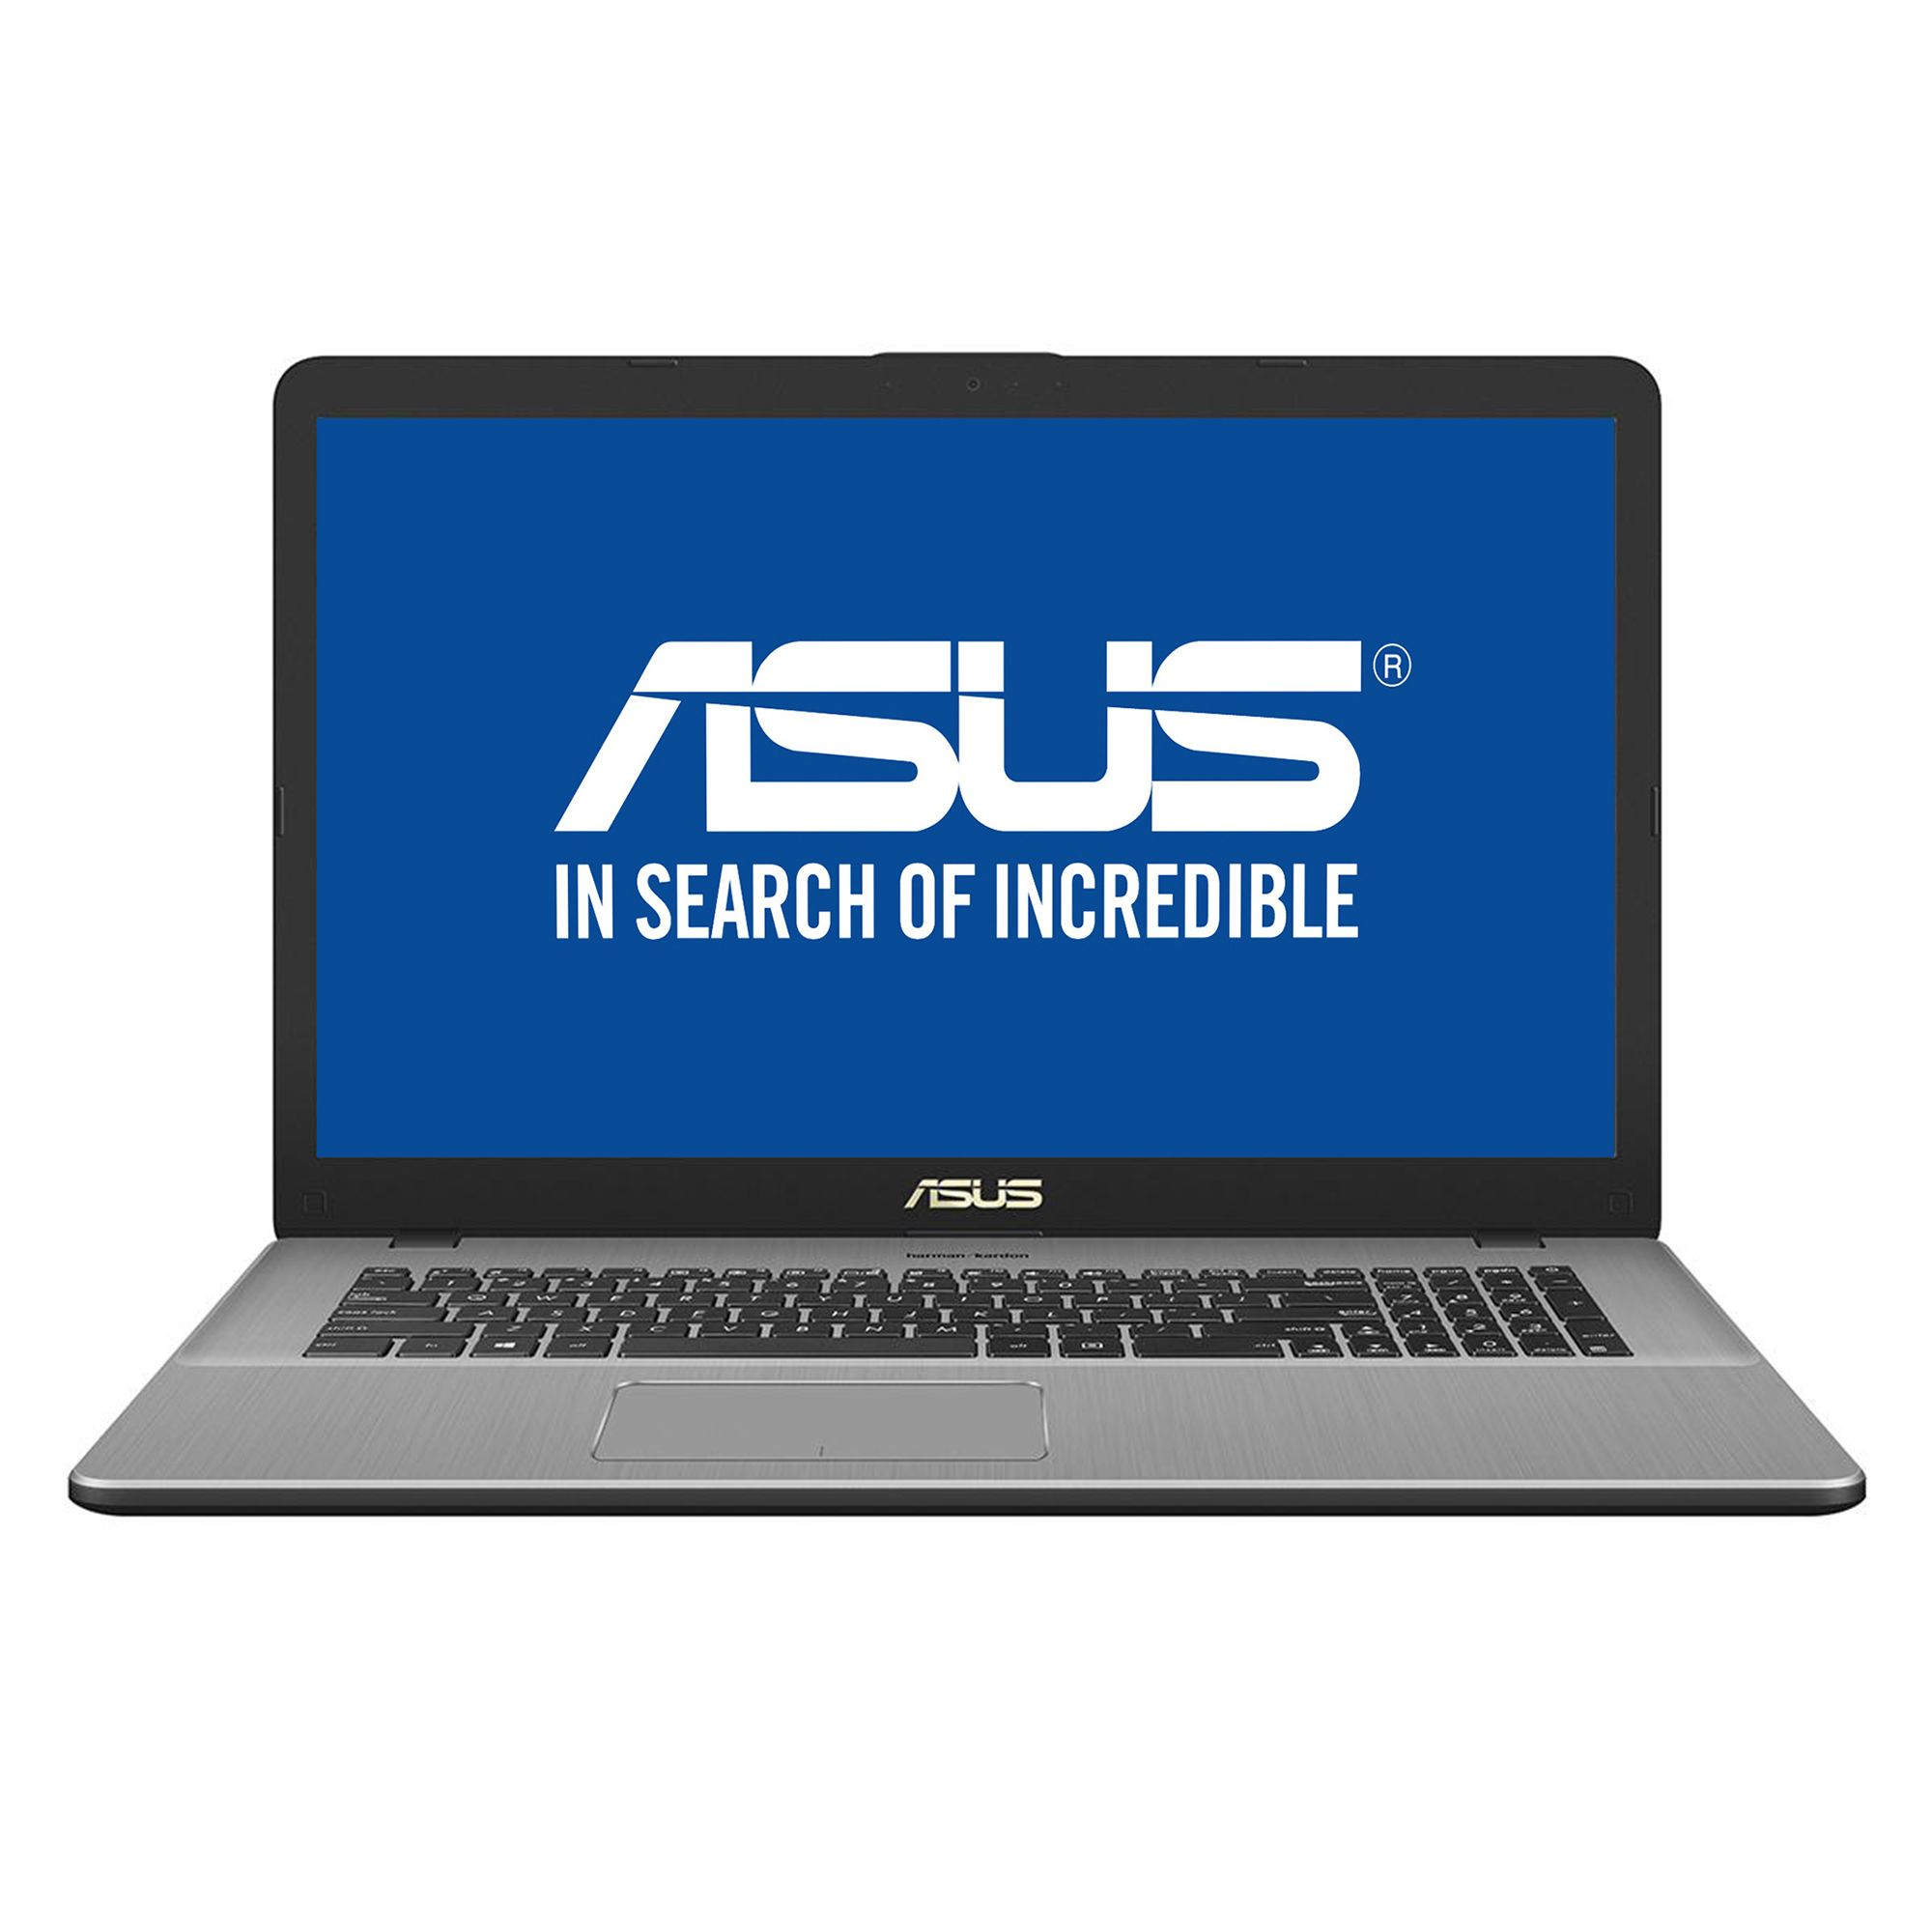 Notebook Asus VivoBook Pro N705UD 17.3 Full HD Intel Core i5-7200U GTX 1050-4GB RAM 8GB HDD 1TB + SSD 128GB Endless OS